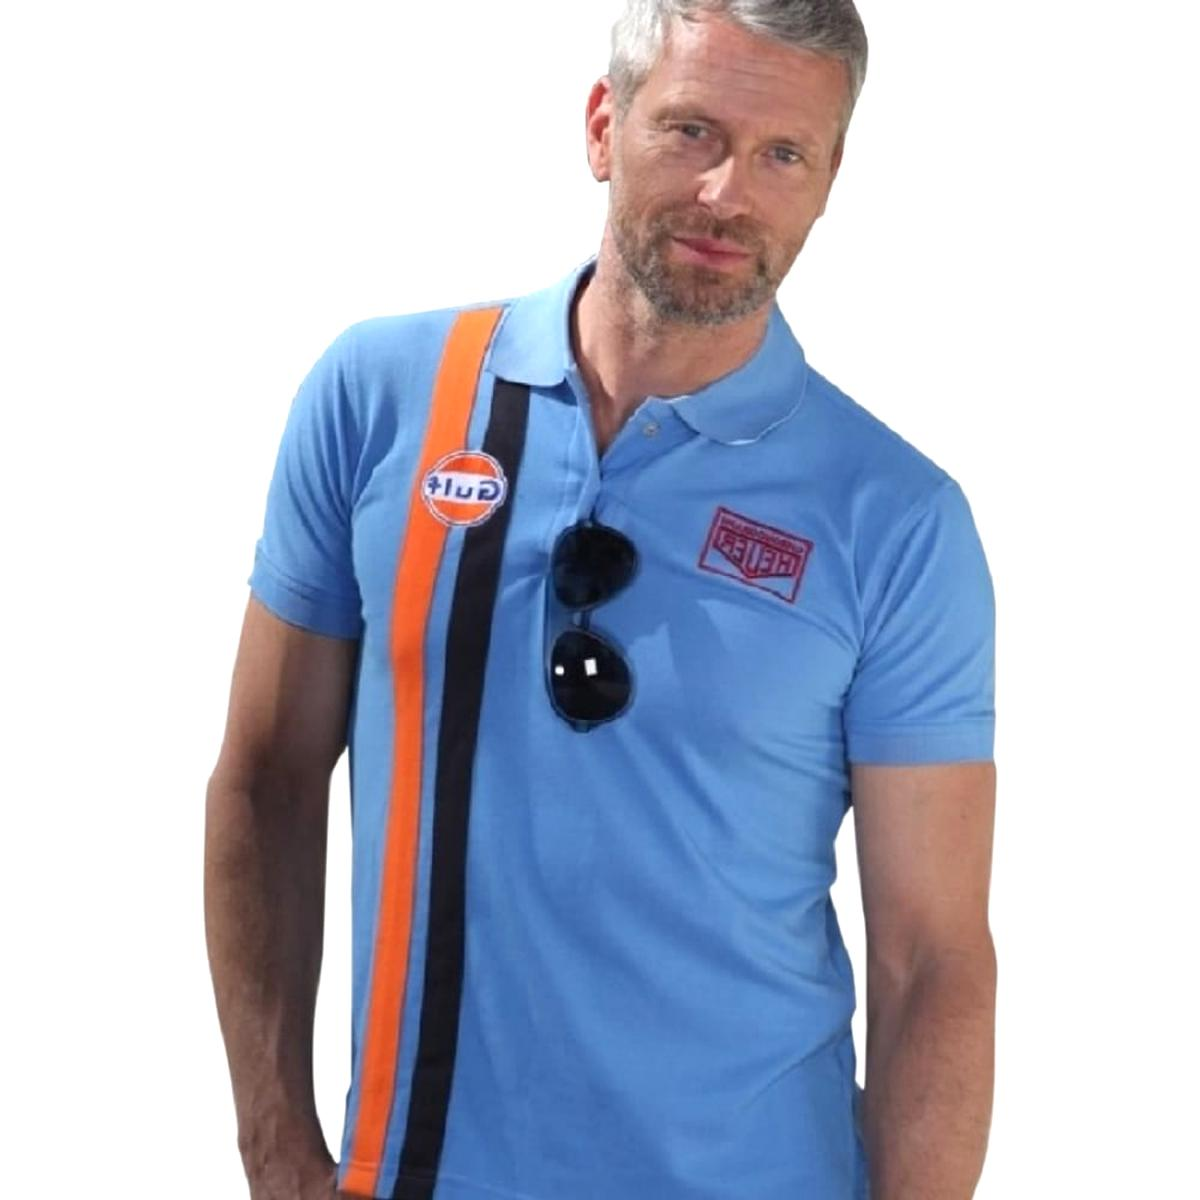 polo gulf d'occasion